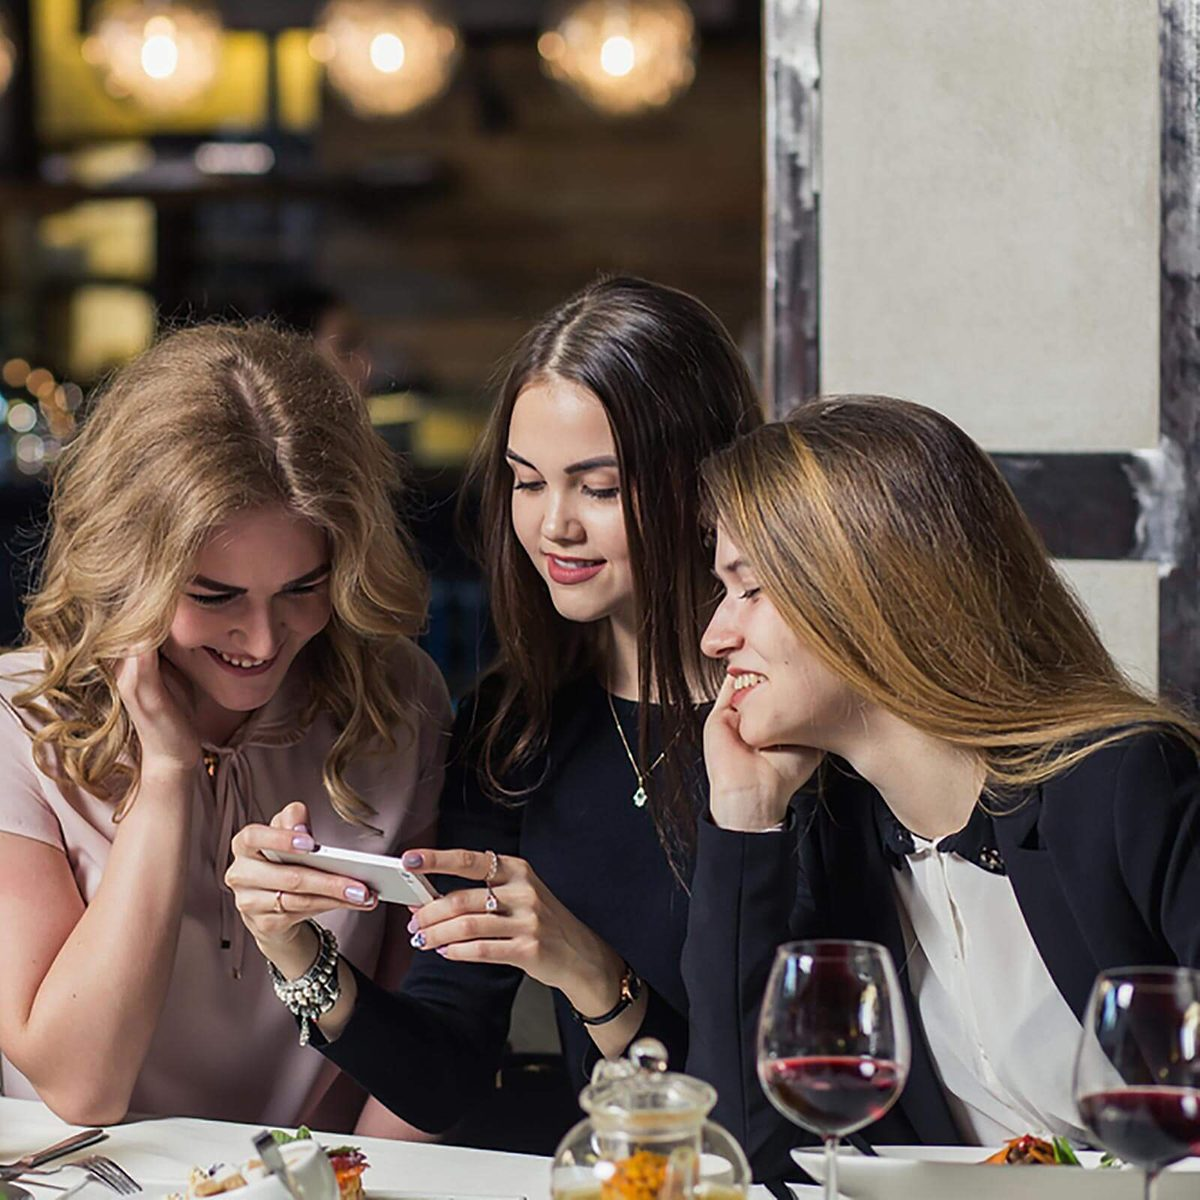 Girls looking at a phone together over food